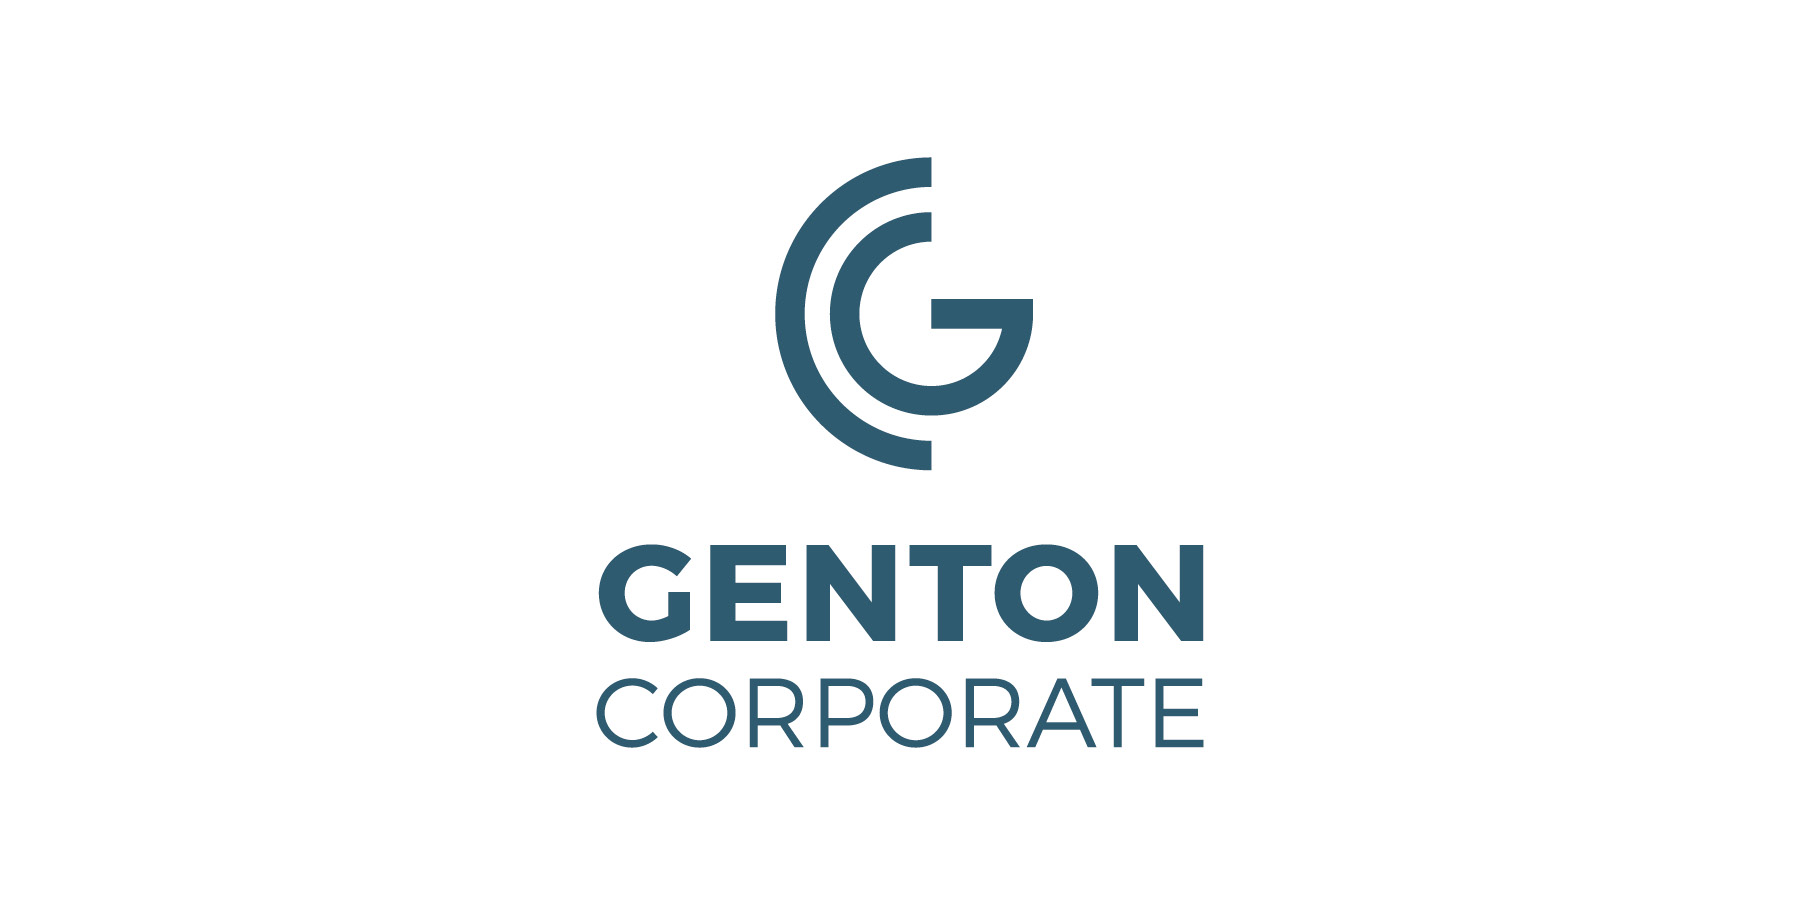 Genton Corporate logo